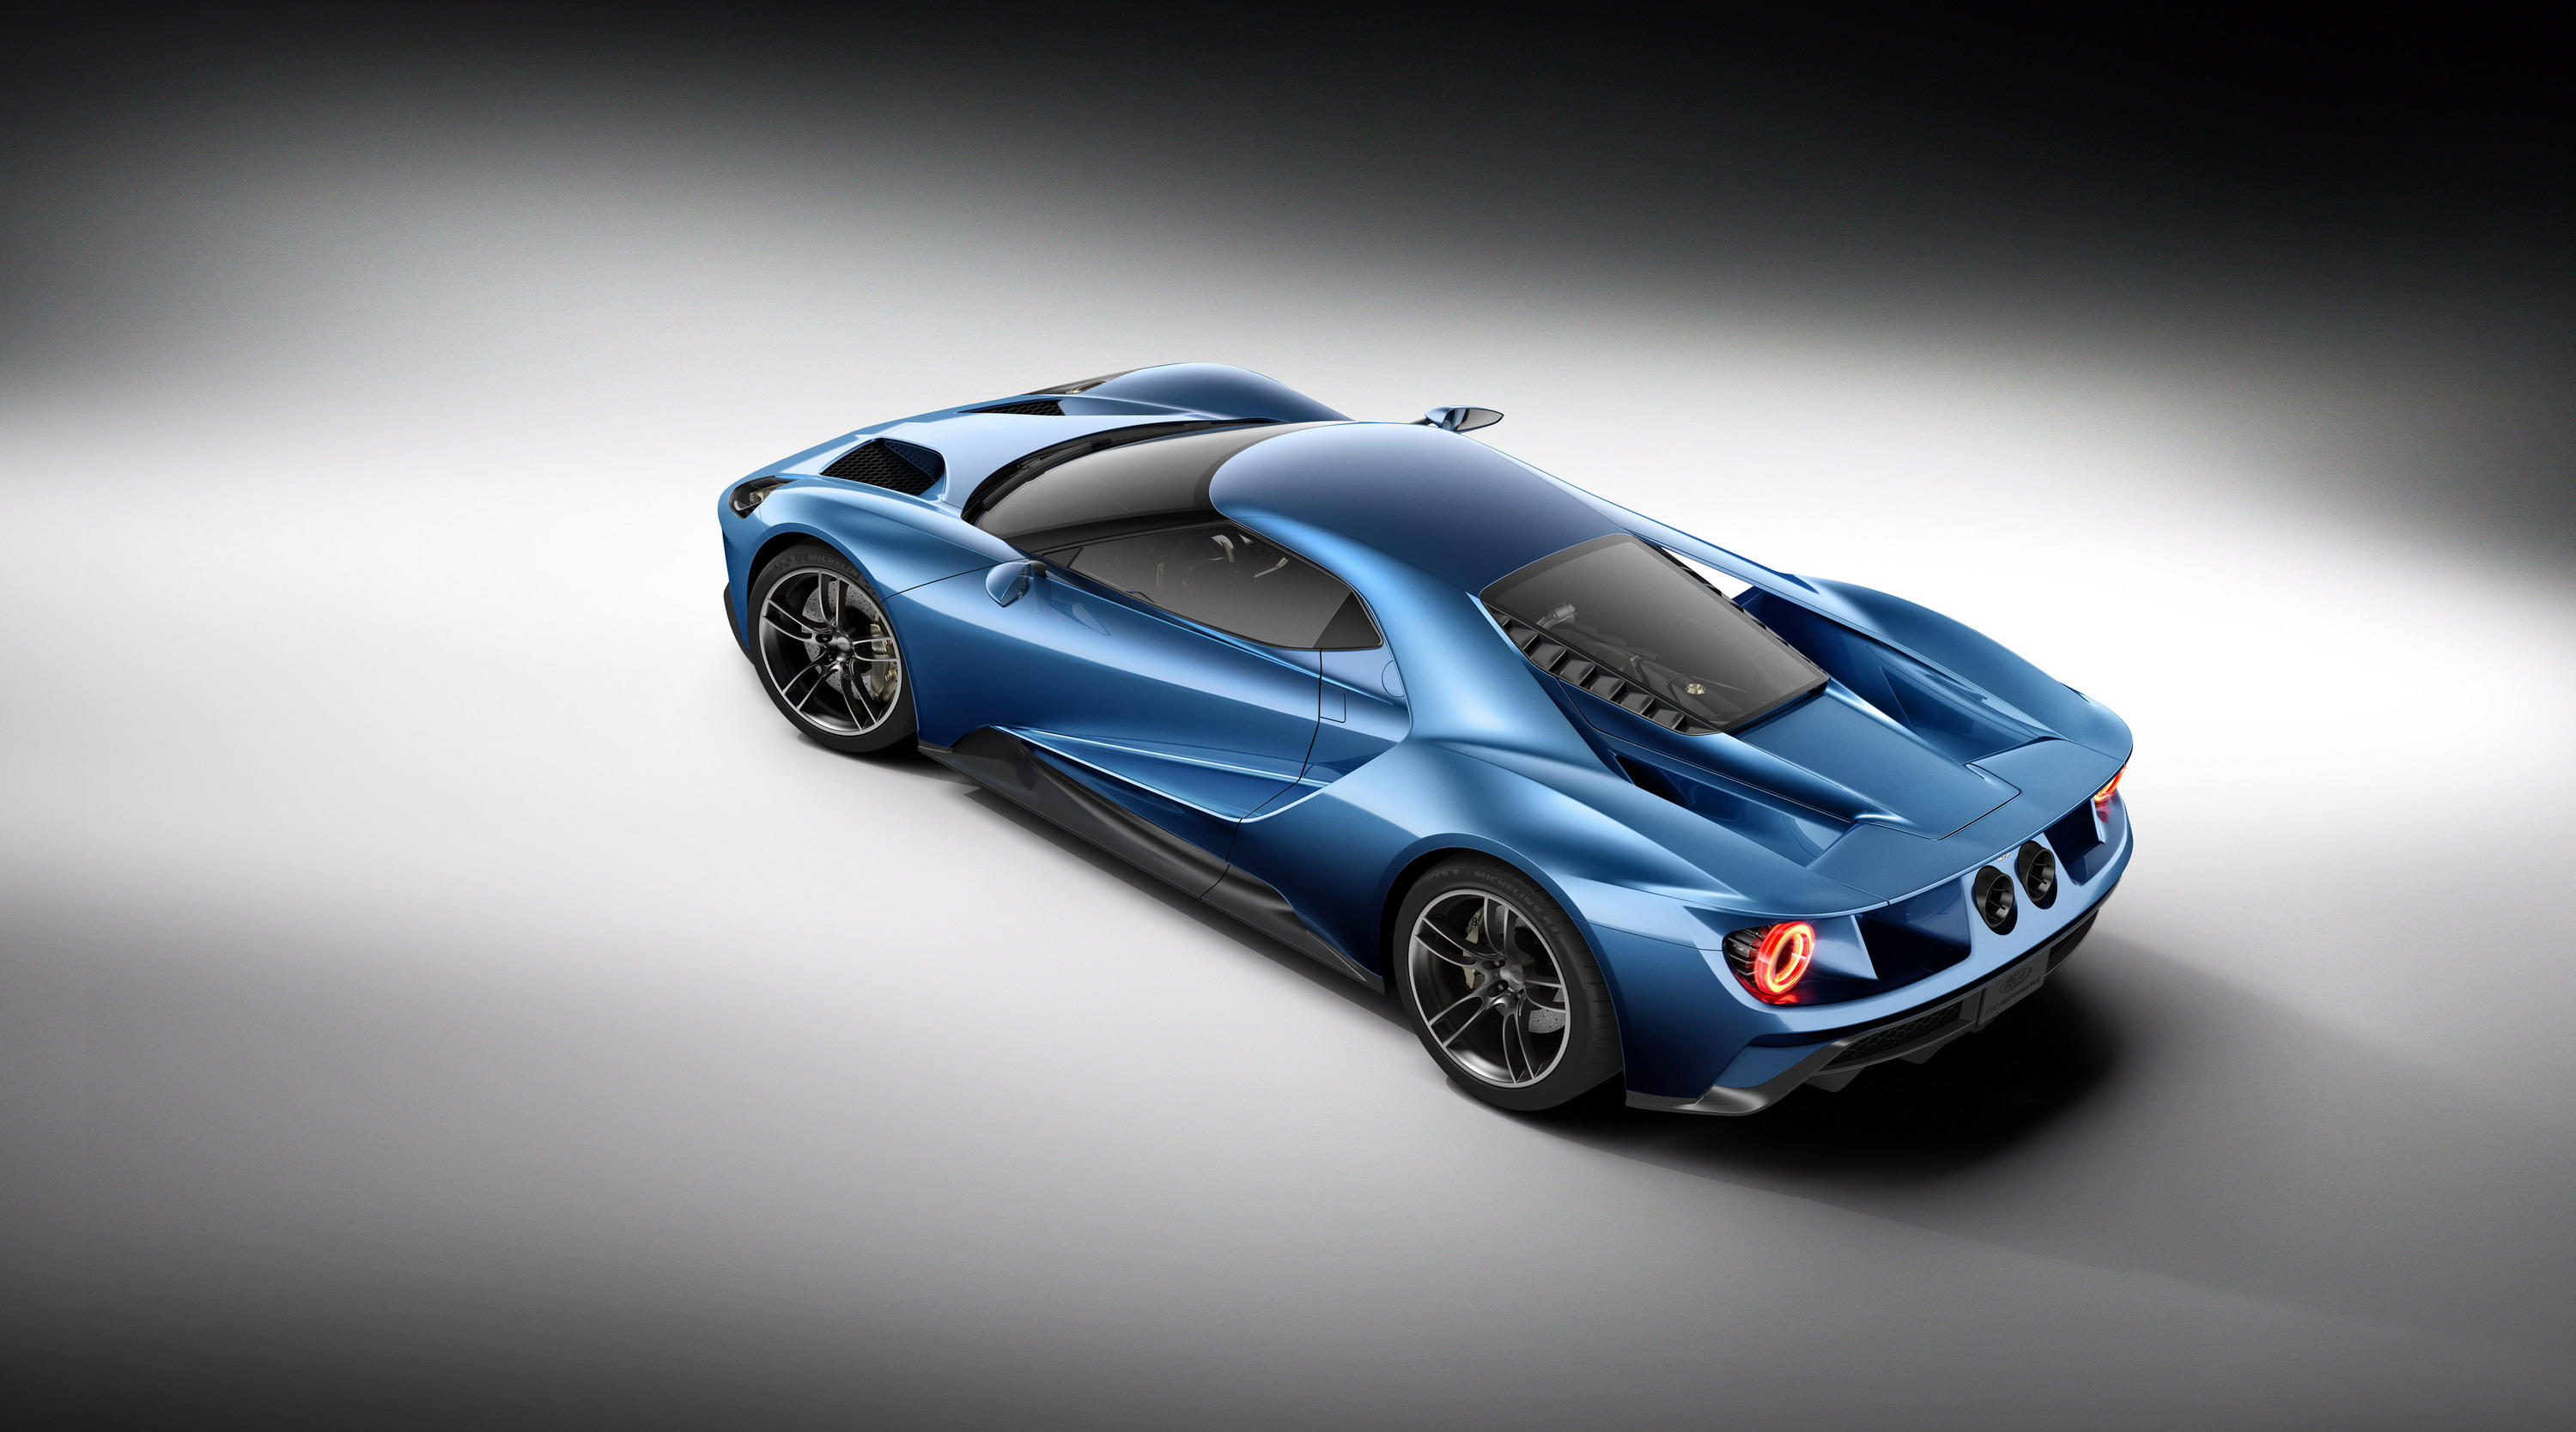 2016 Ford Gt Top Speed >> 2017 Ford Gt Review Top Speed